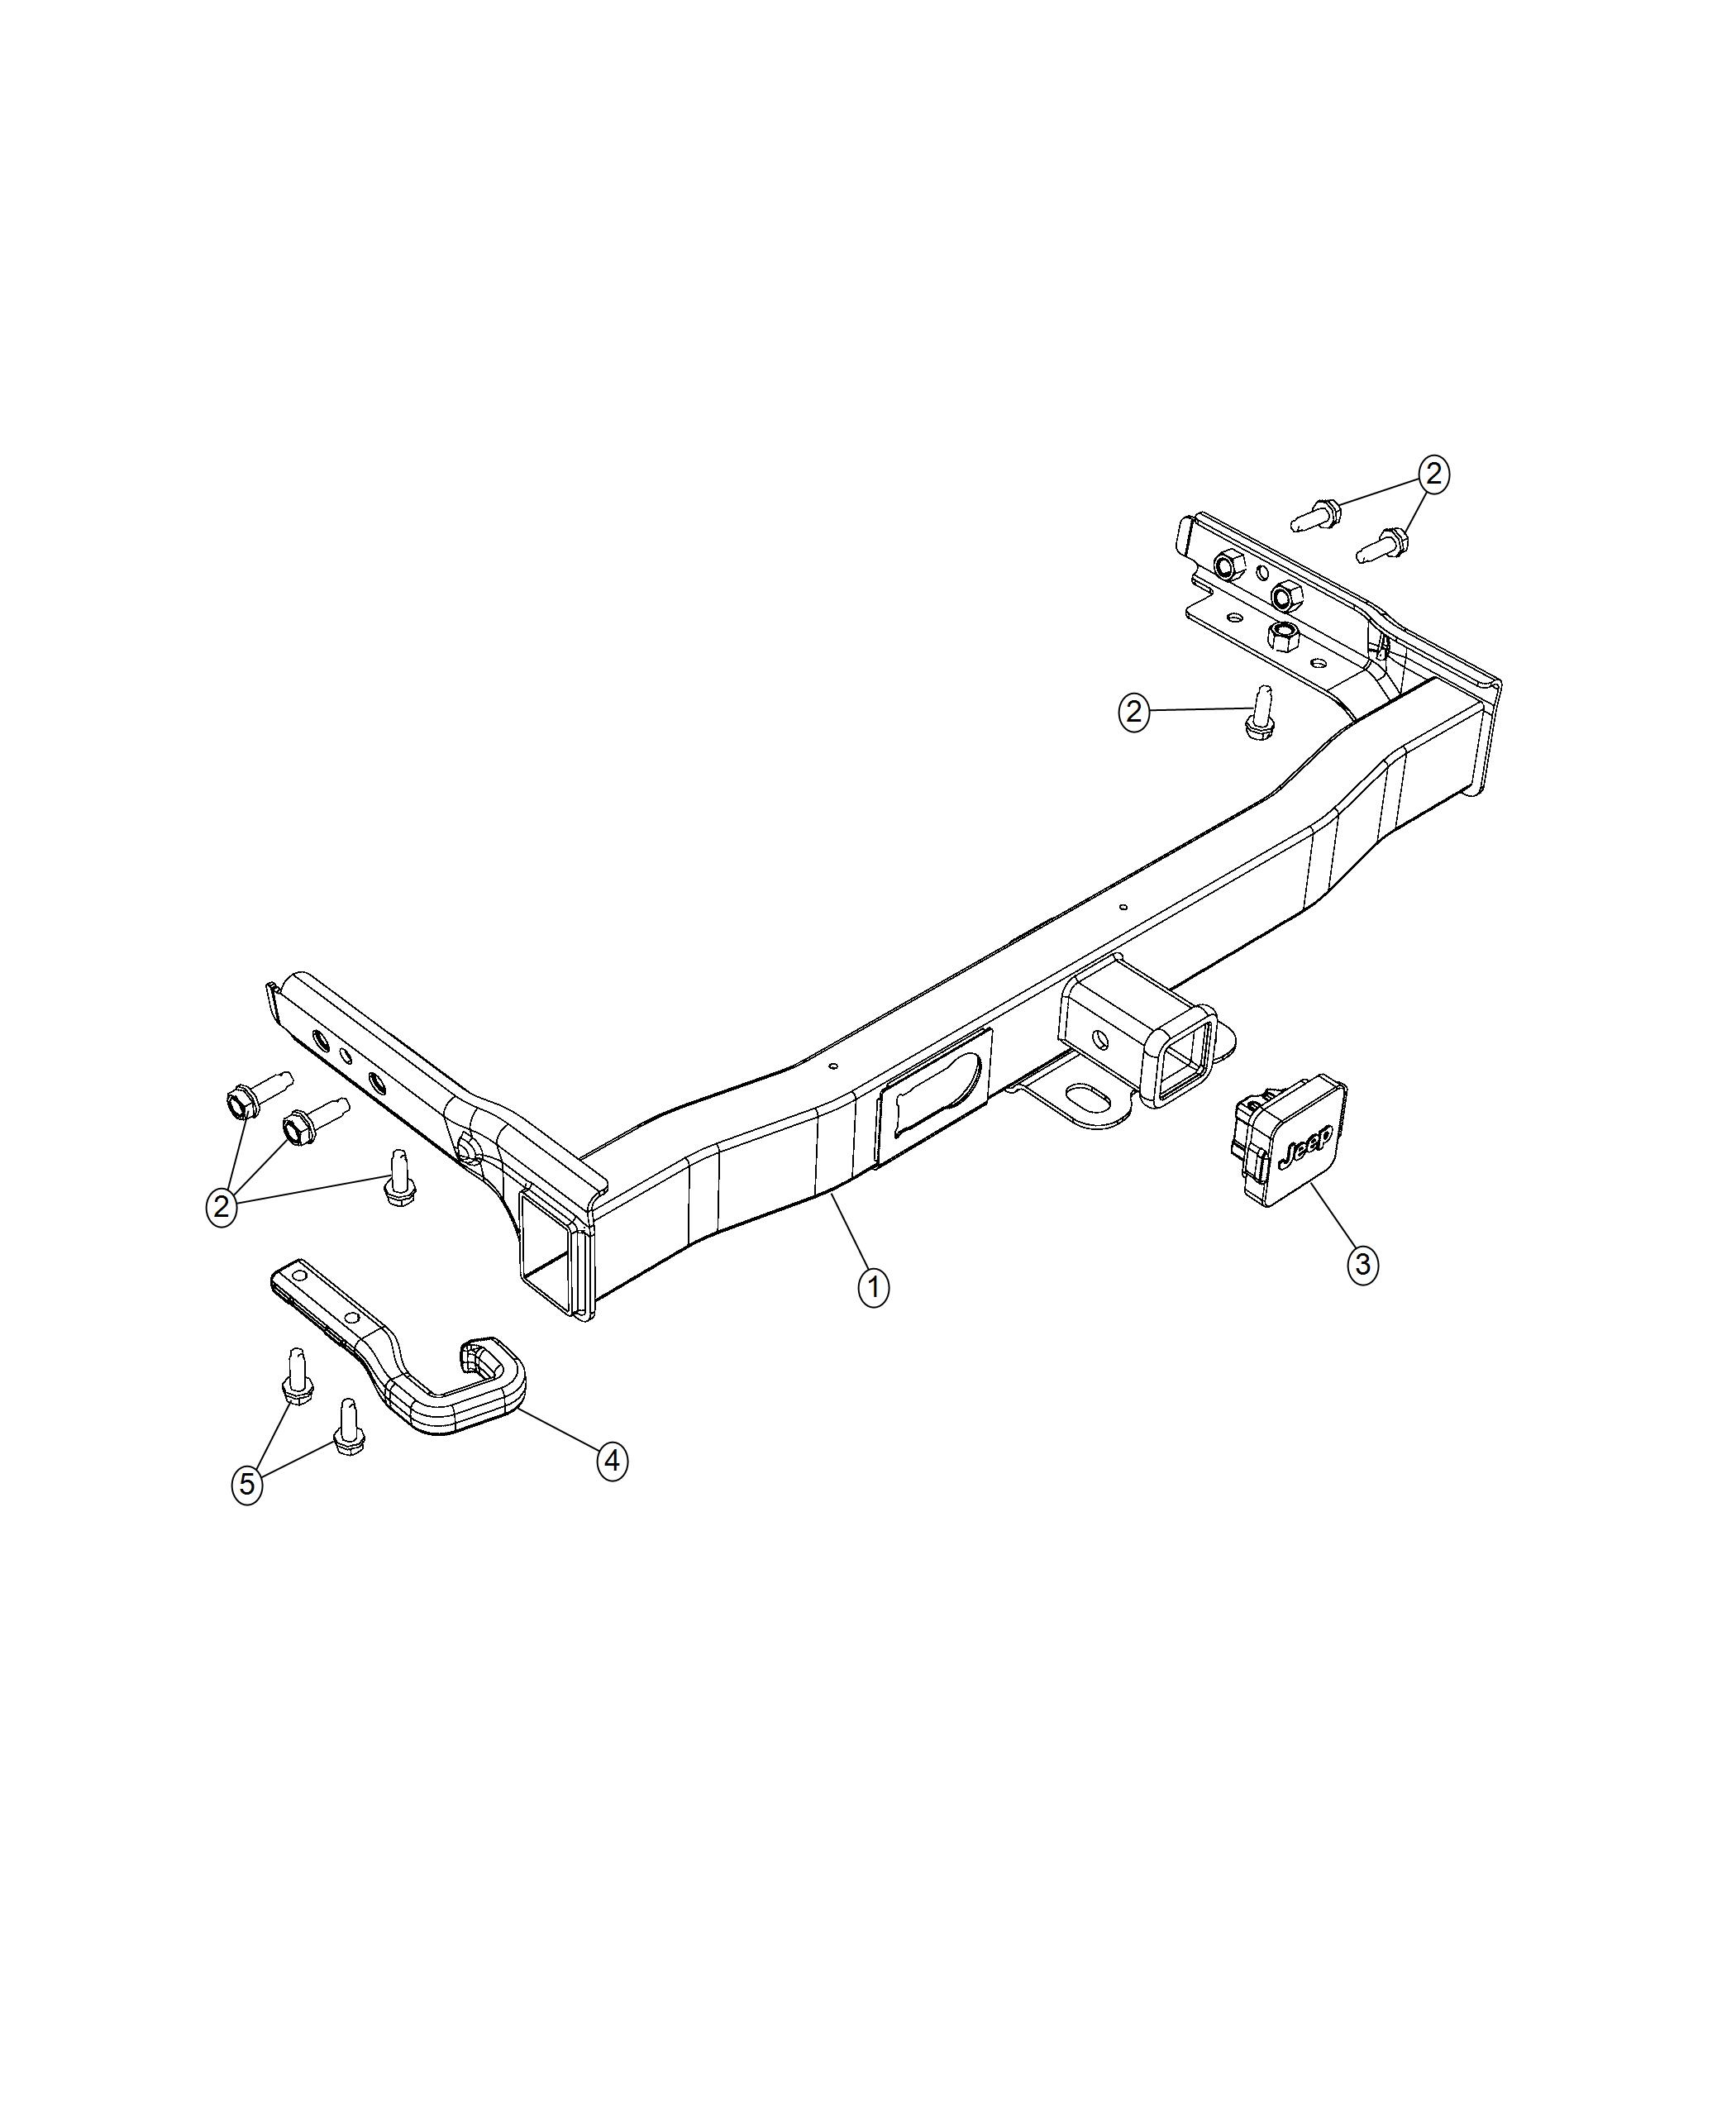 2019 Jeep Cherokee Hitch, receiver kit. Trailer, trailer